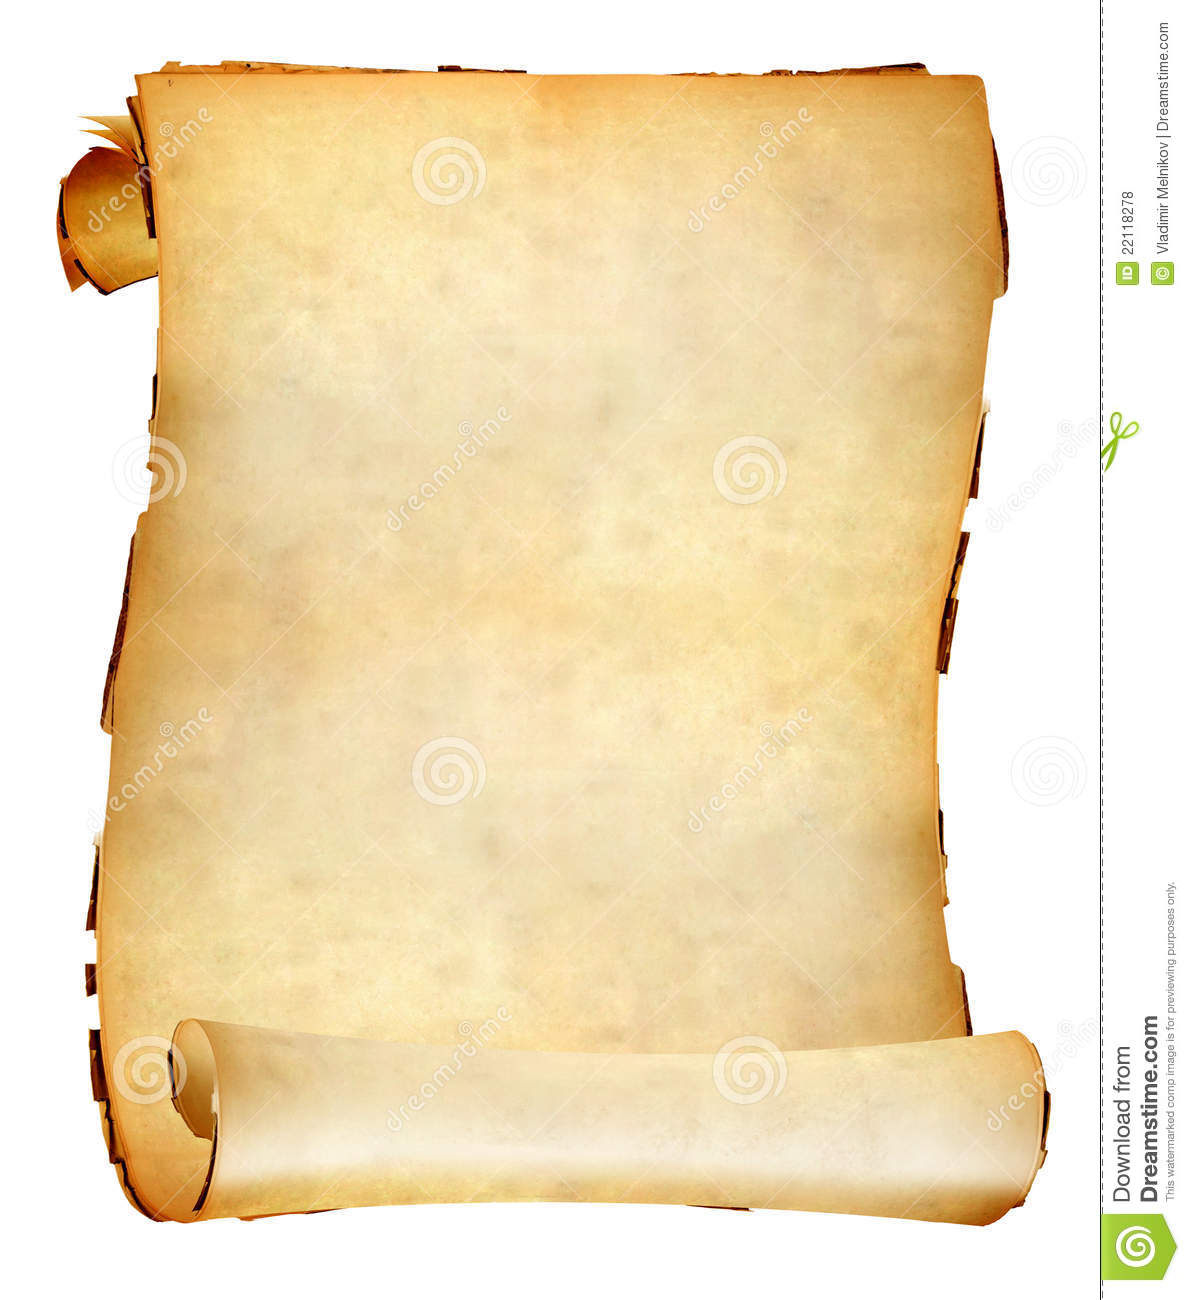 Old Paper Scroll Royalty Free Stock Photos - Image: 22118278